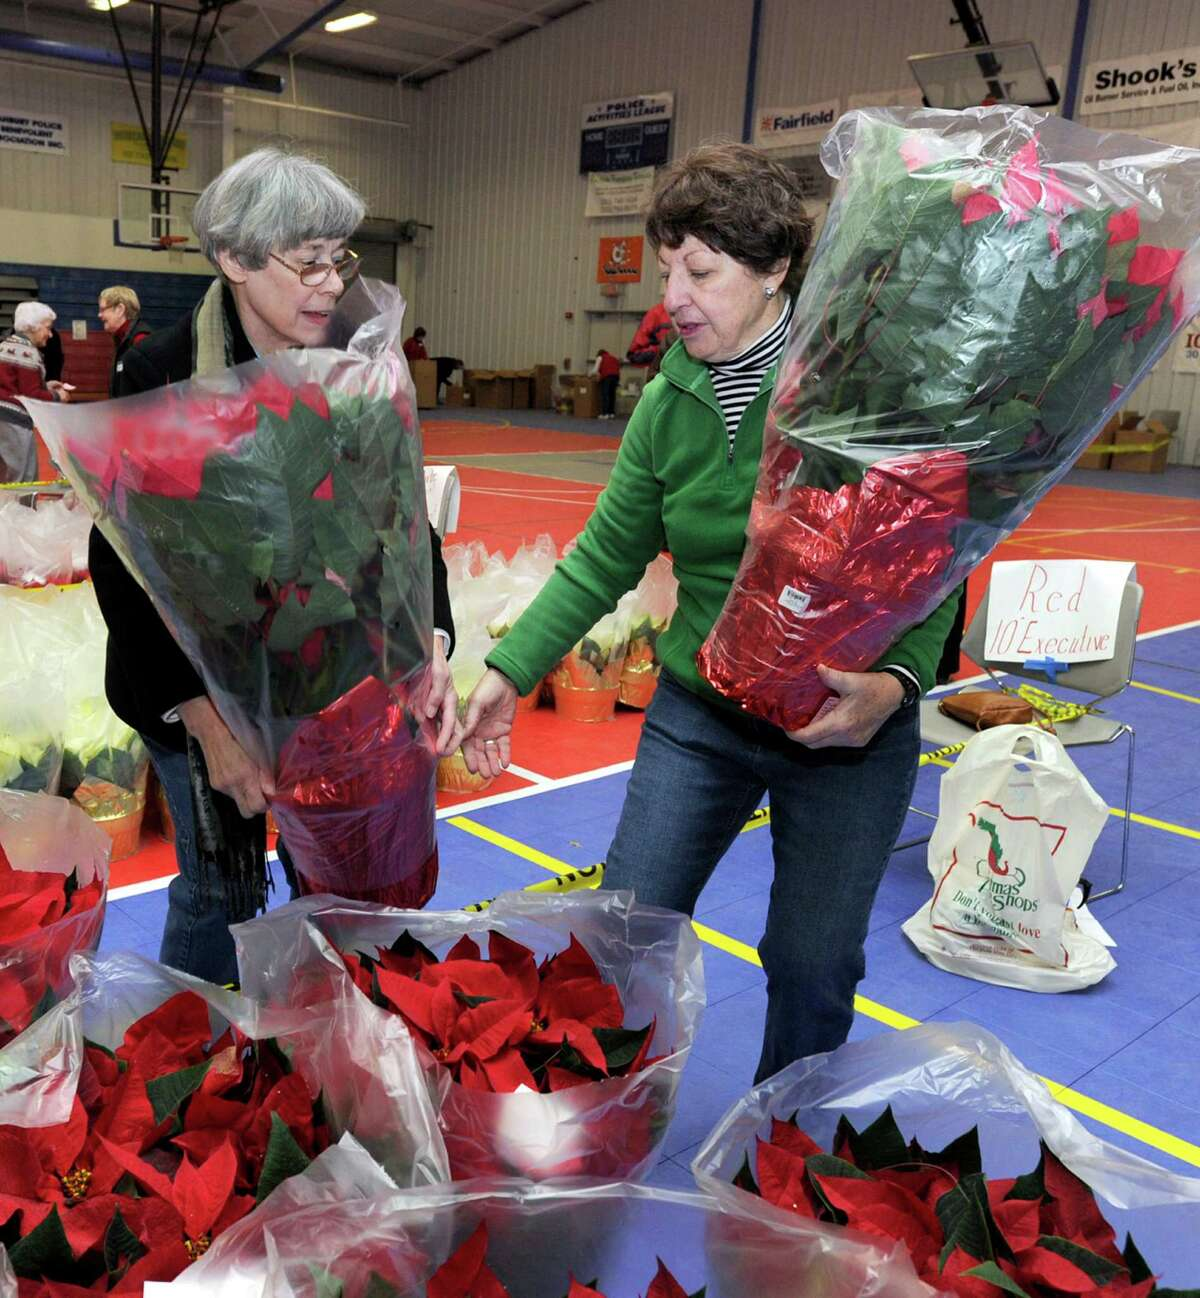 Marilyn Chisholm, left, and MaryEllen Ryder, both of Danbury, carry poinsettias that are being organized for delivery. Members of the Danbury/New Fairfield Woman's Club and Danbury Men's Club met at the PAL building in Danbury Tuesday morning, Nov. 27, 2012, to distribute poinsettias that they sold as a fundraiser.